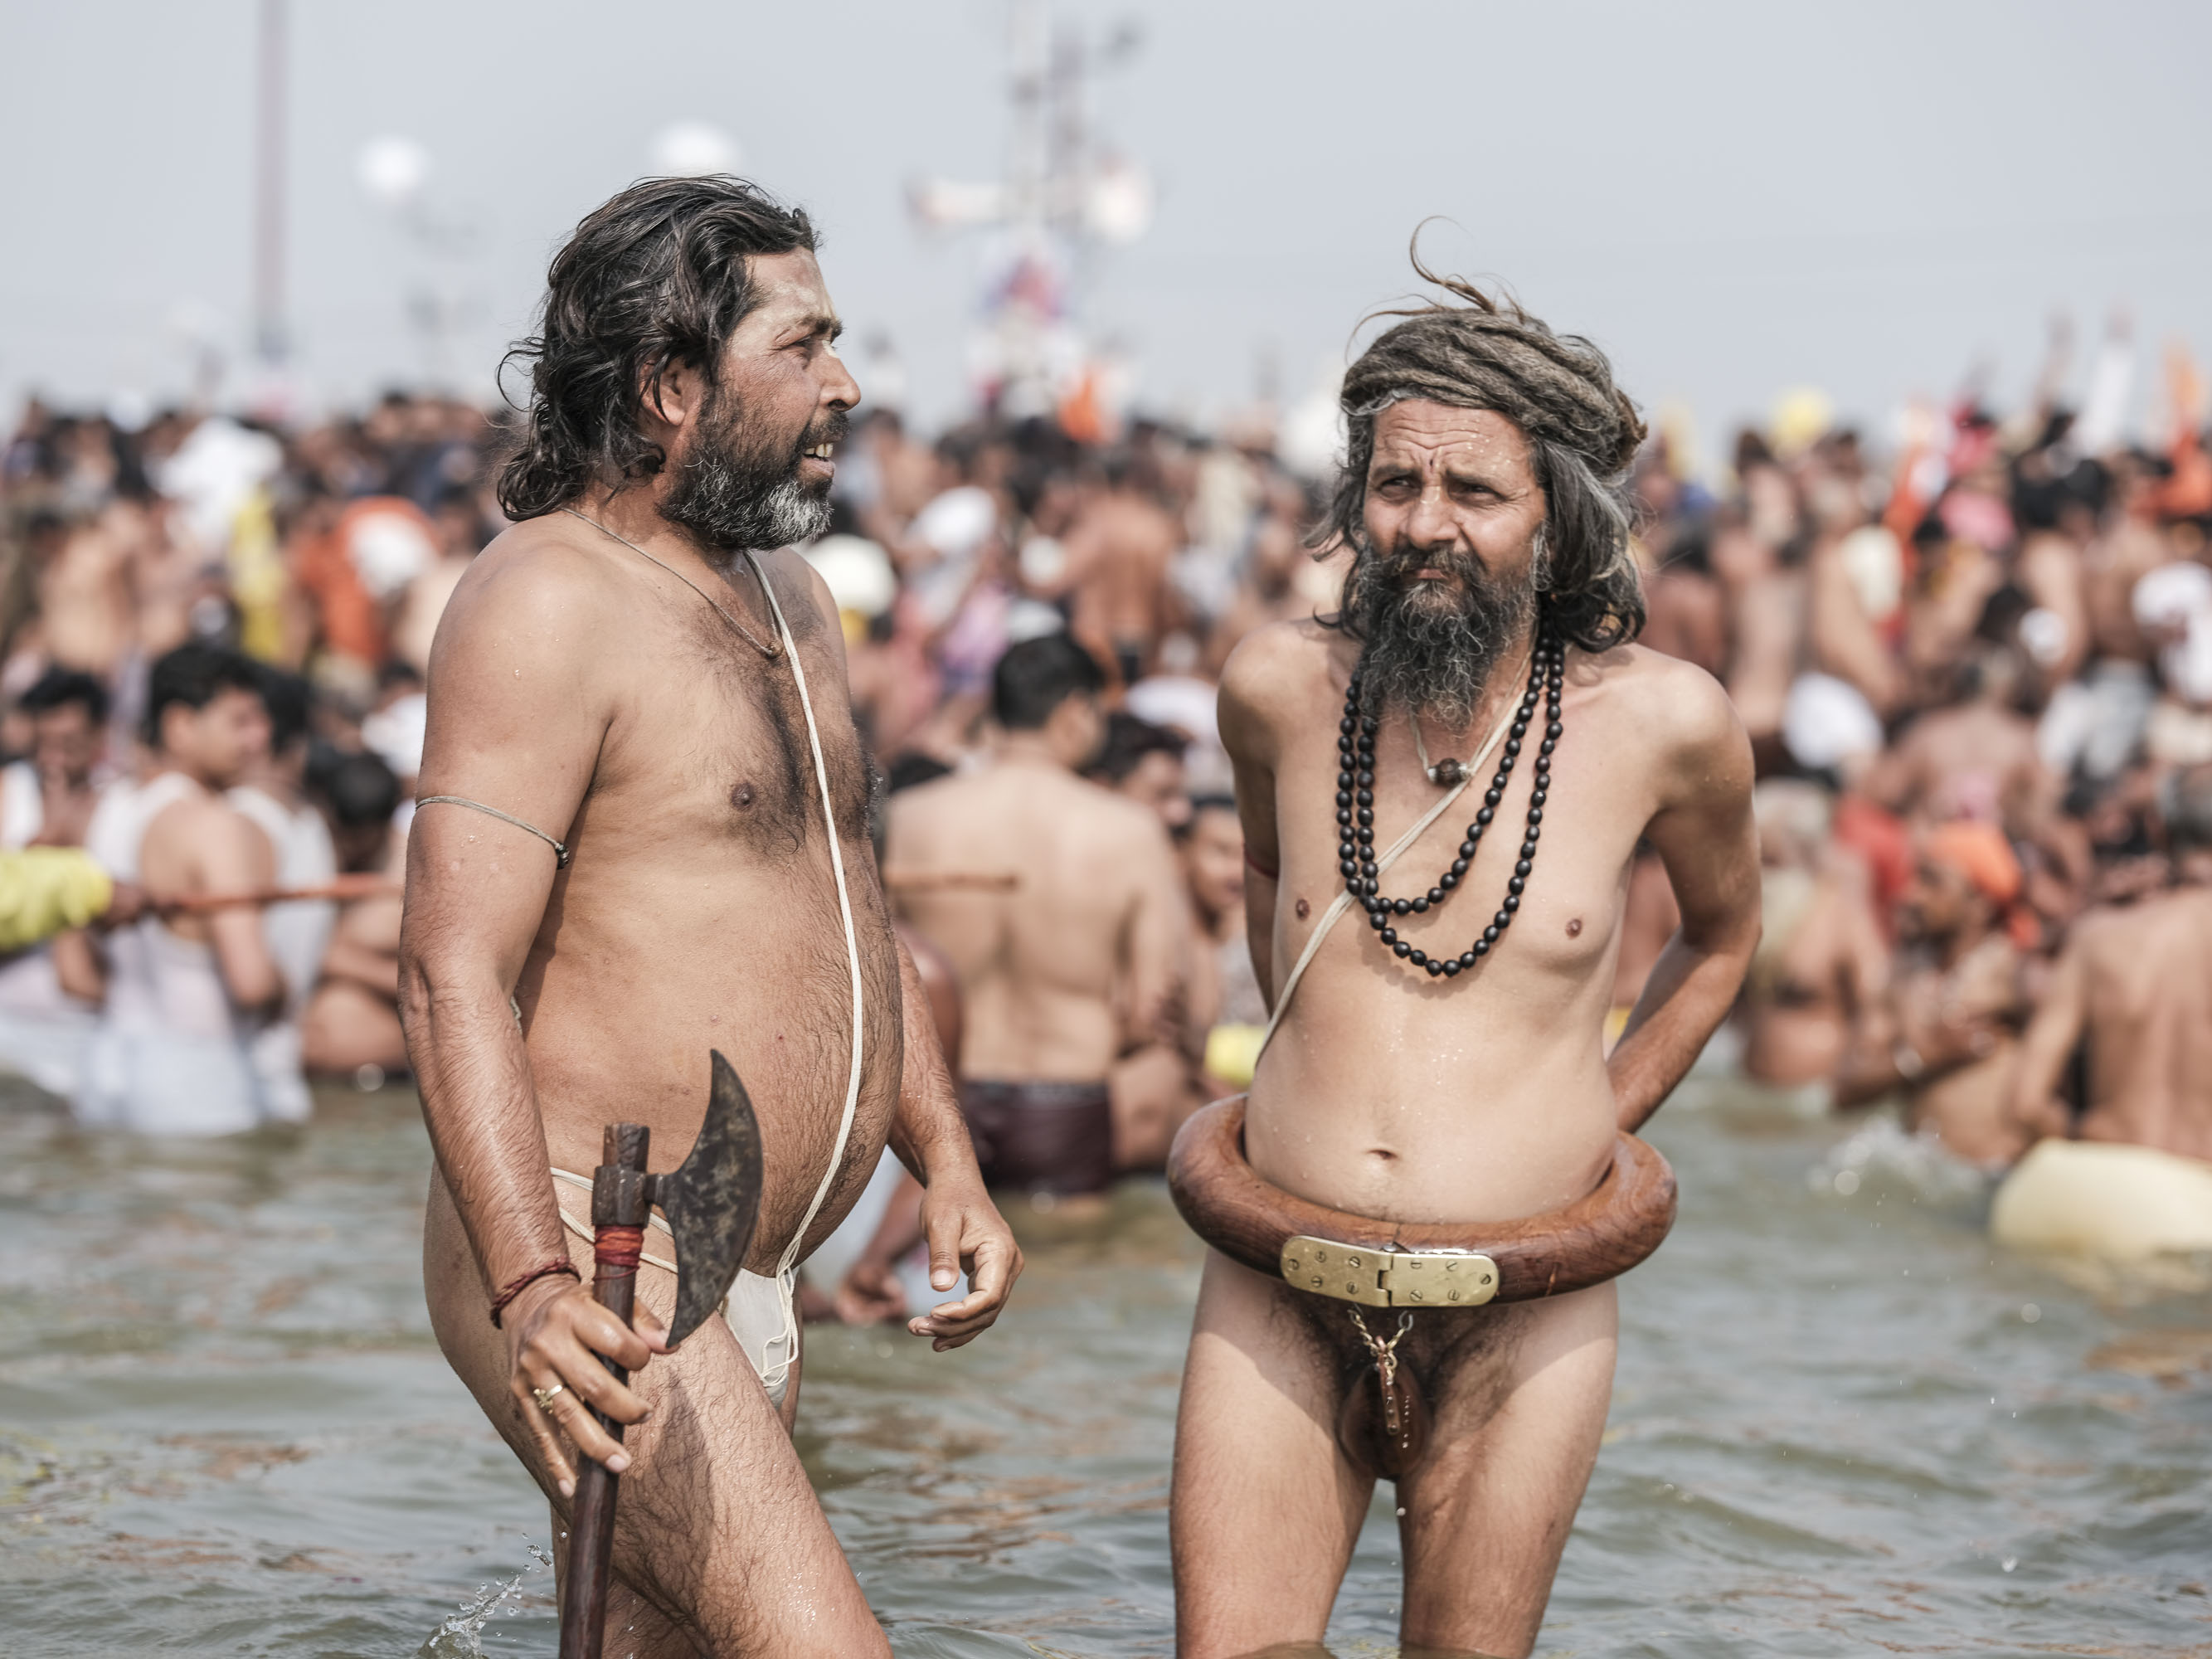 4 february baba men crowd bath axe pilgrims Kumbh mela 2019 India Allahabad Prayagraj Ardh hindu religious Festival event rivers photographer jose jeuland photography